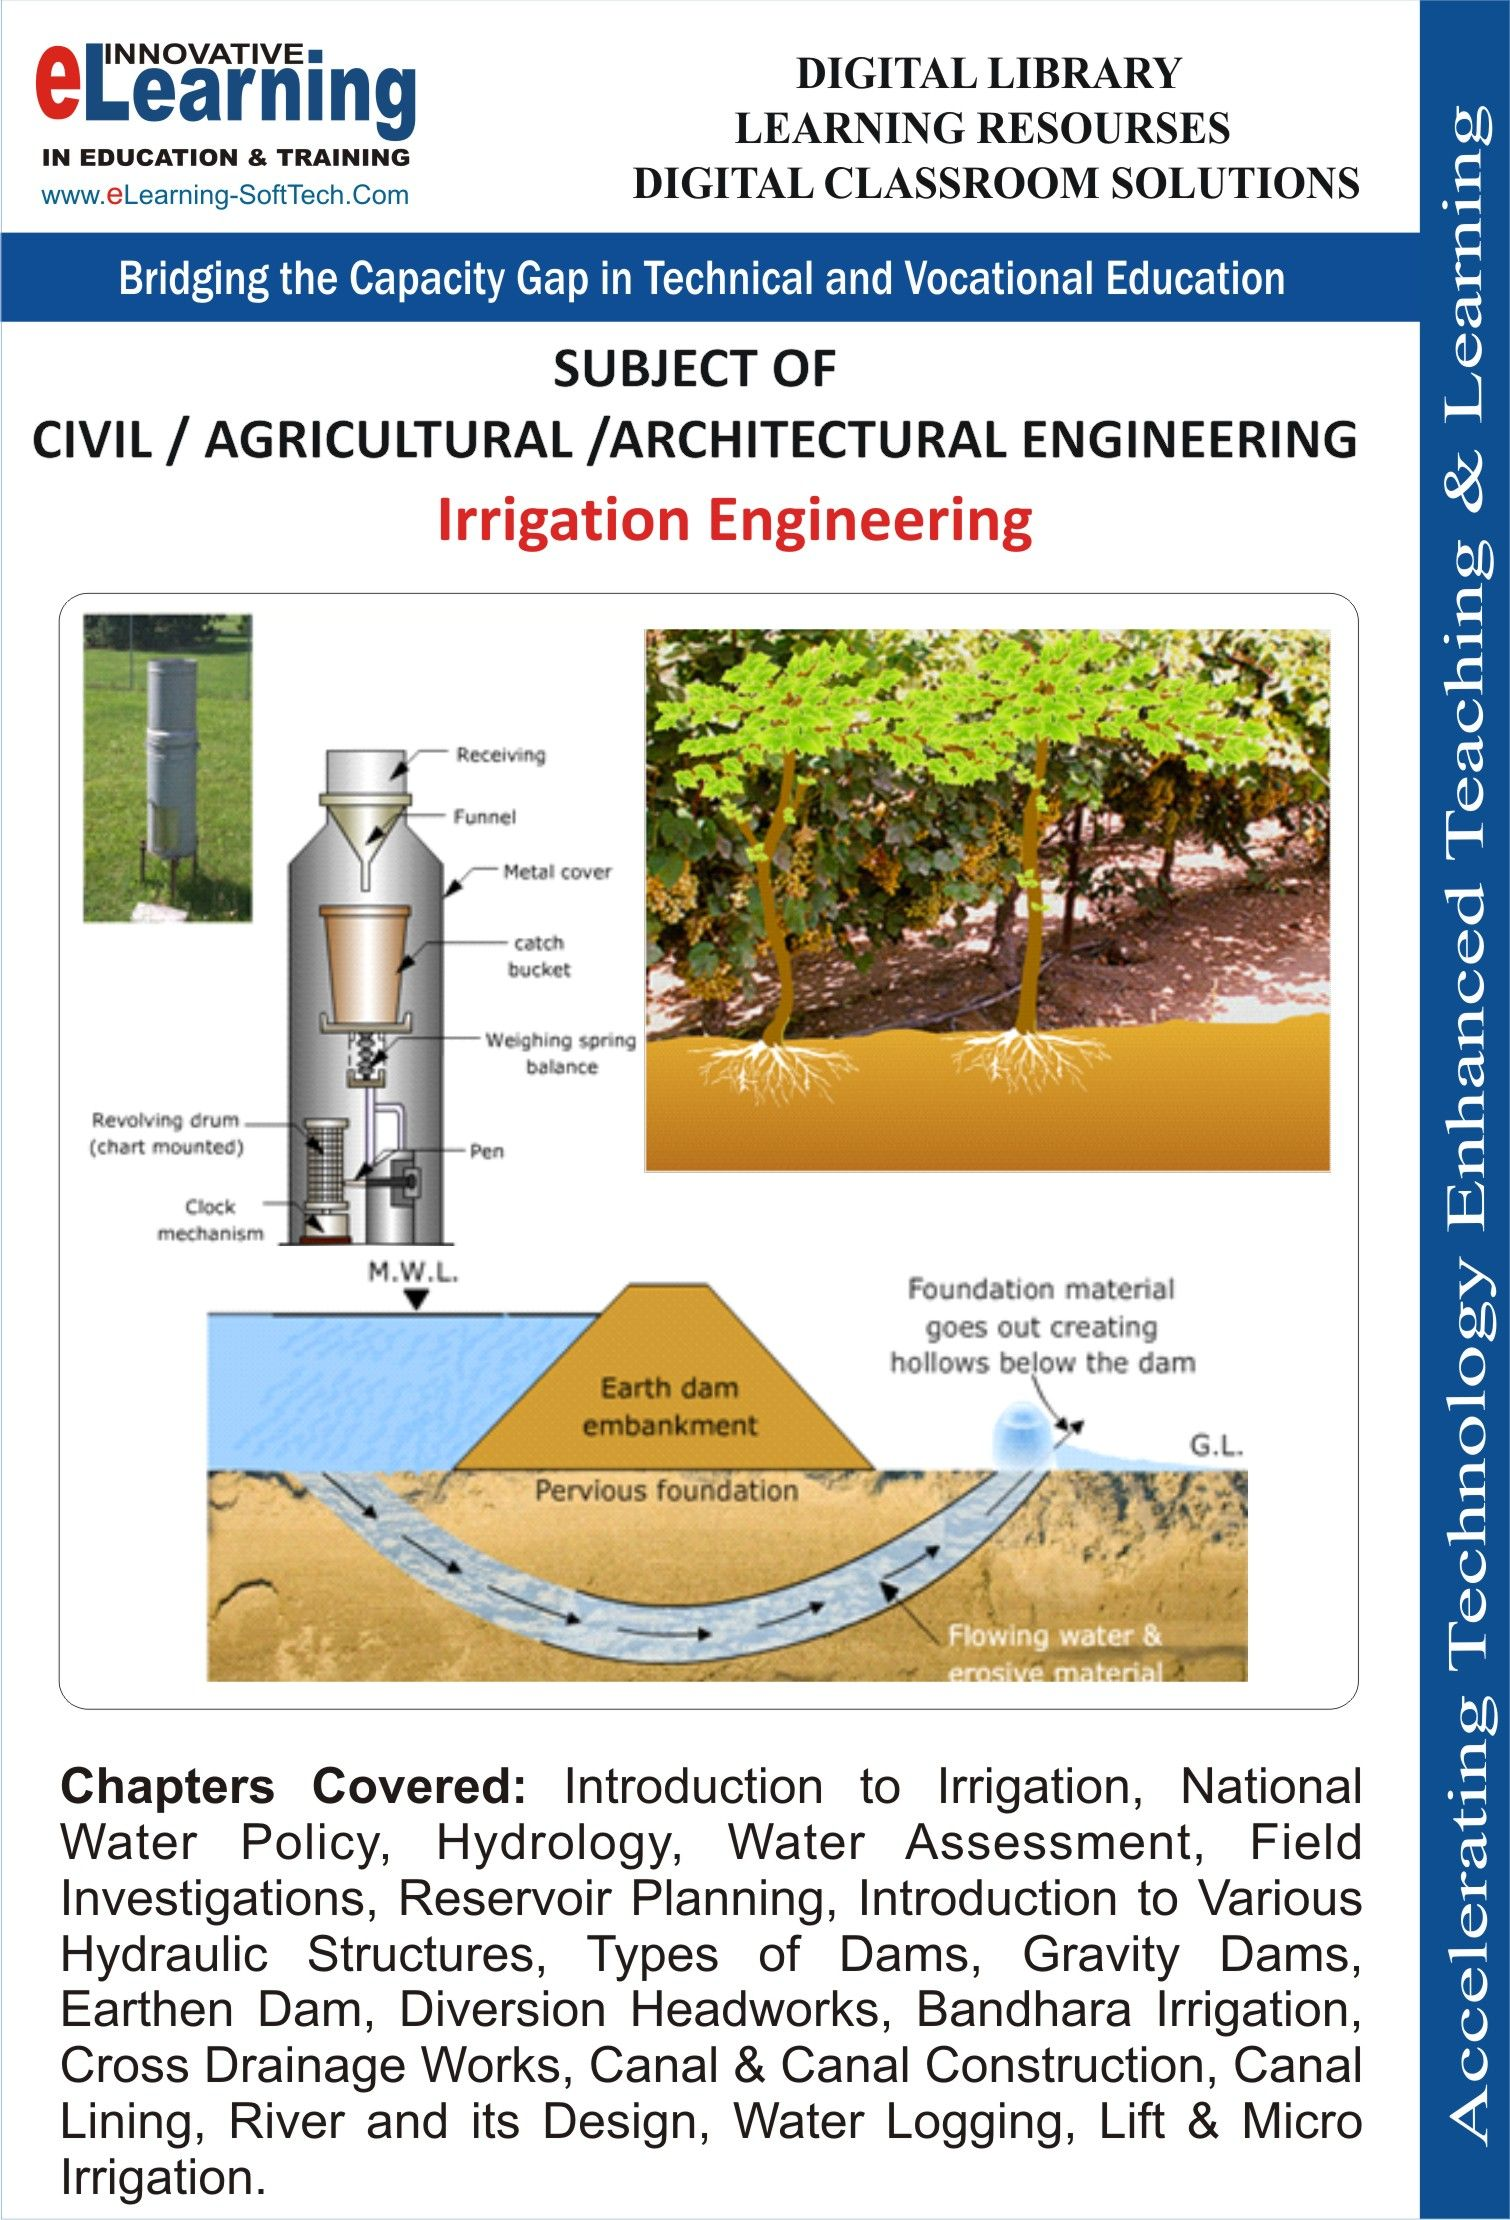 eLearning Software Solution for Irrigation Engineering   eLearning